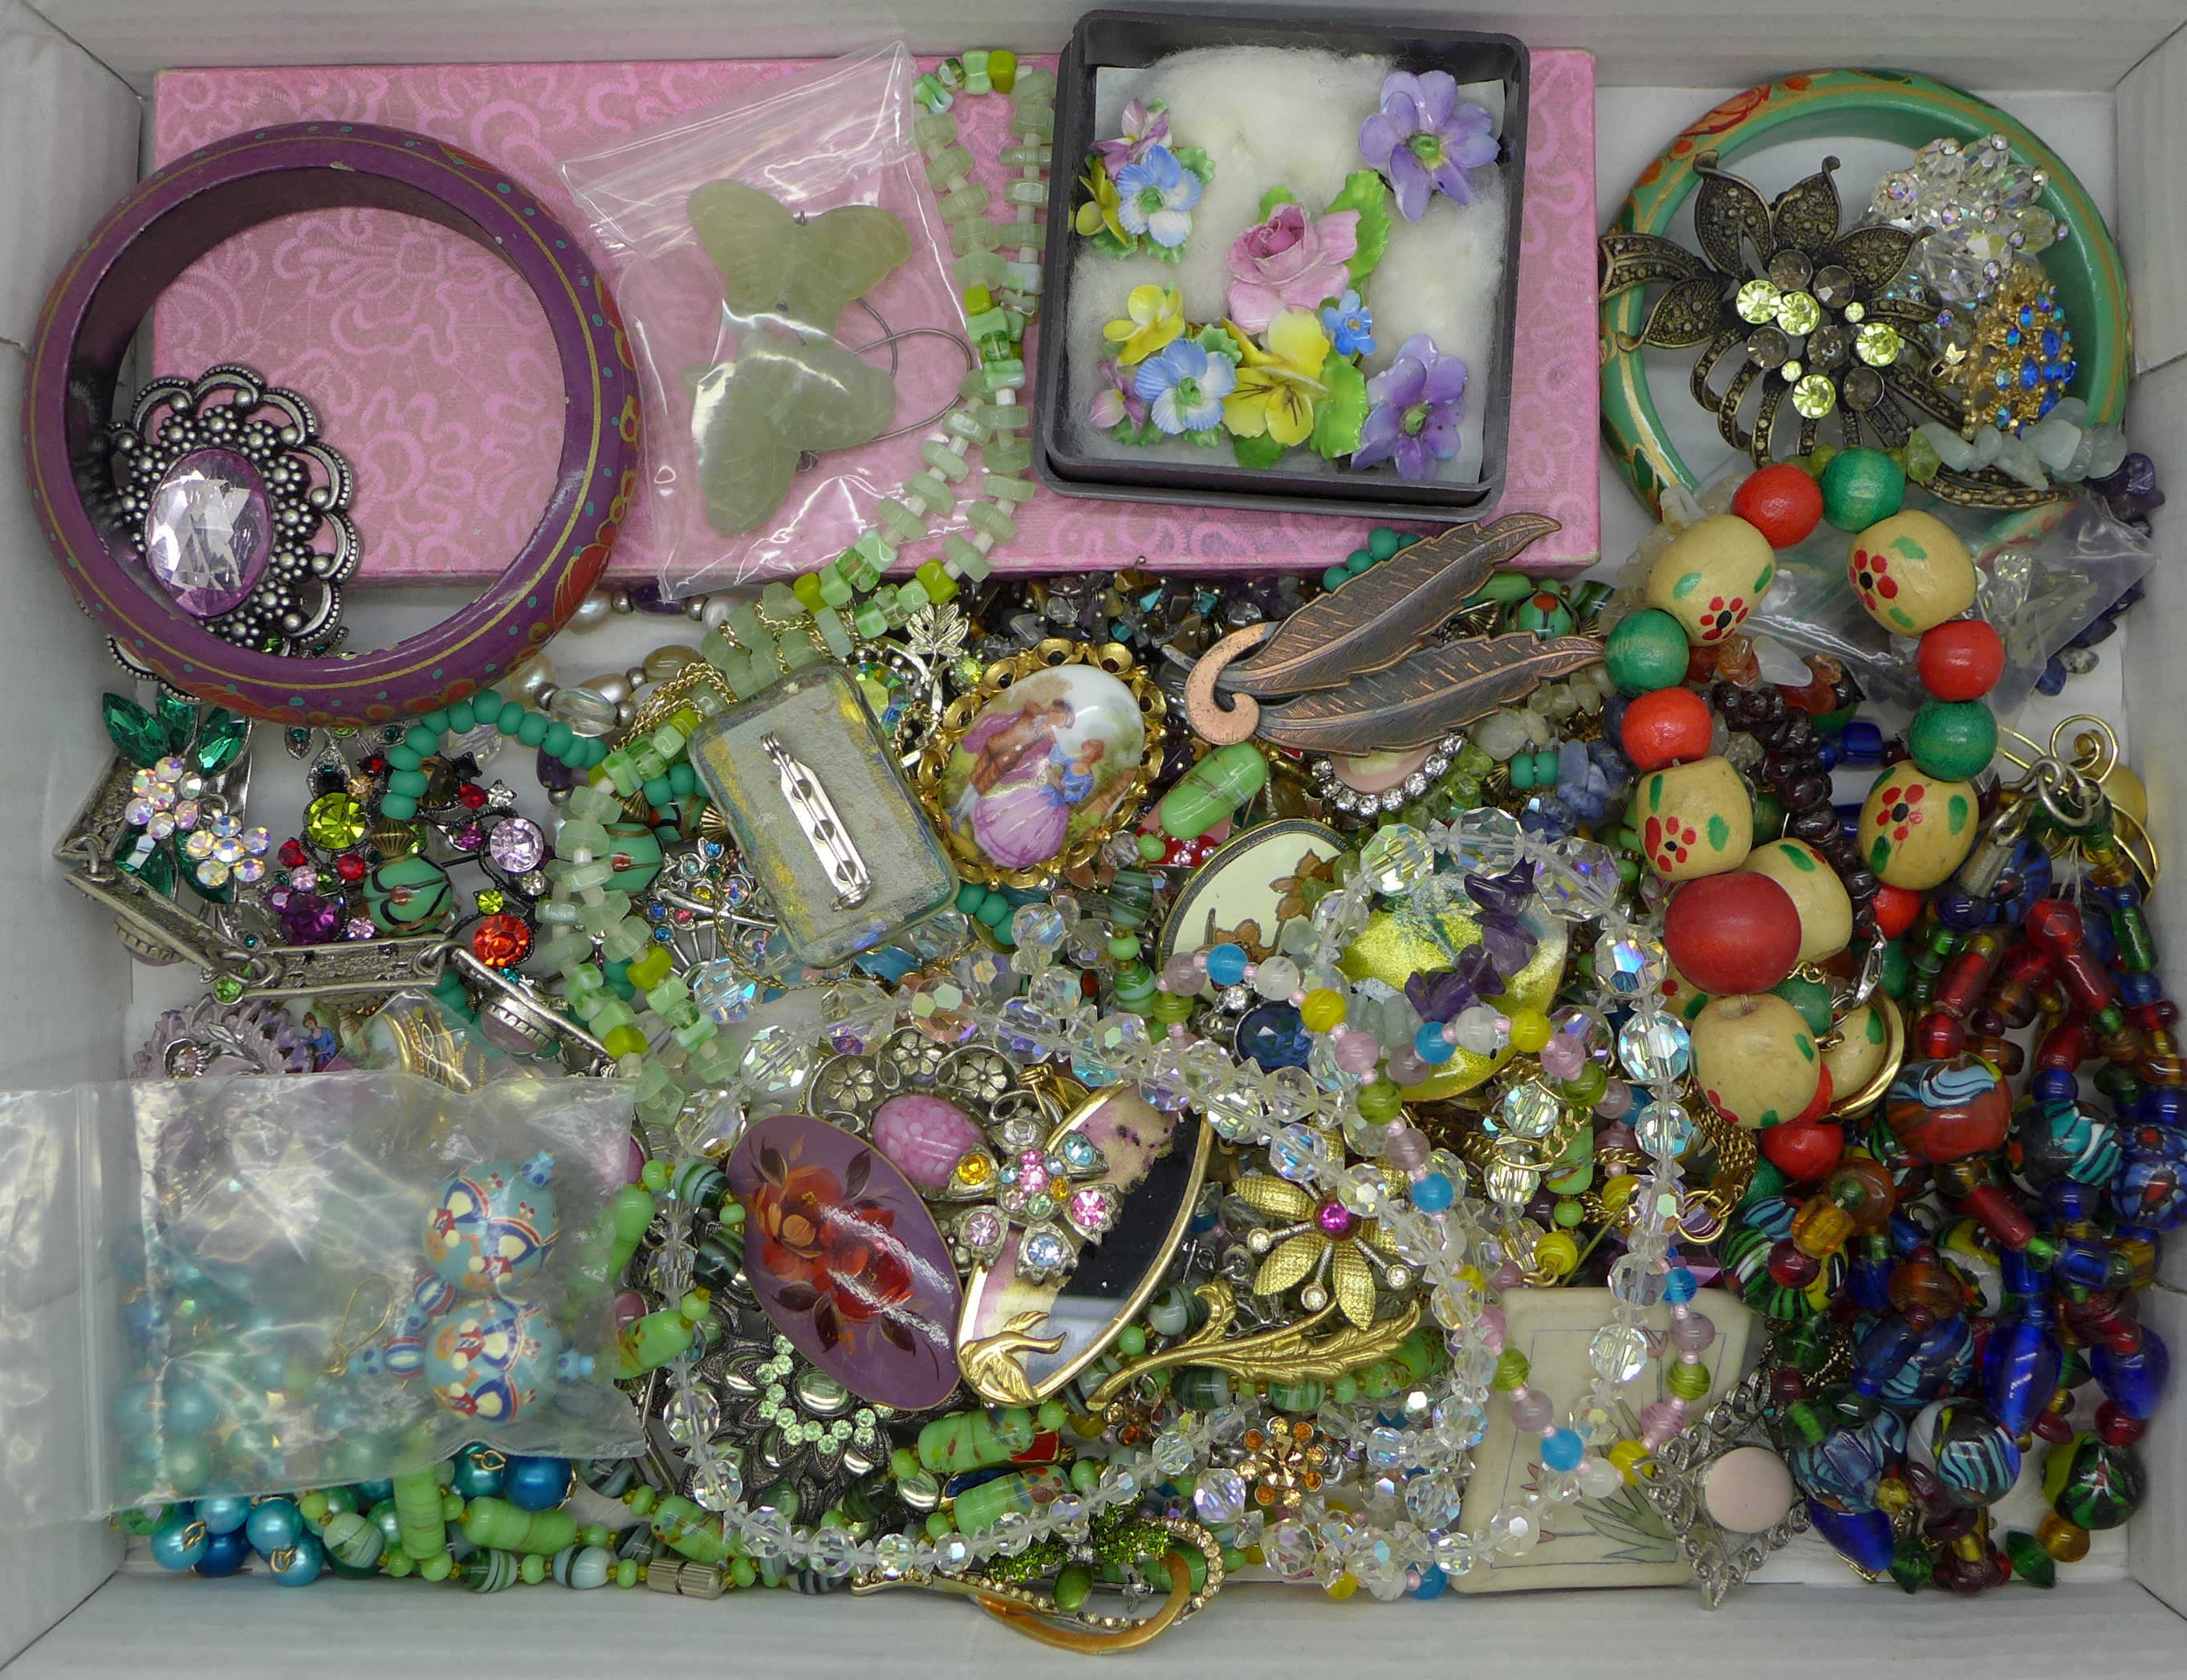 Glass and crystal bead necklaces, earrings, brooches and other costume jewellery